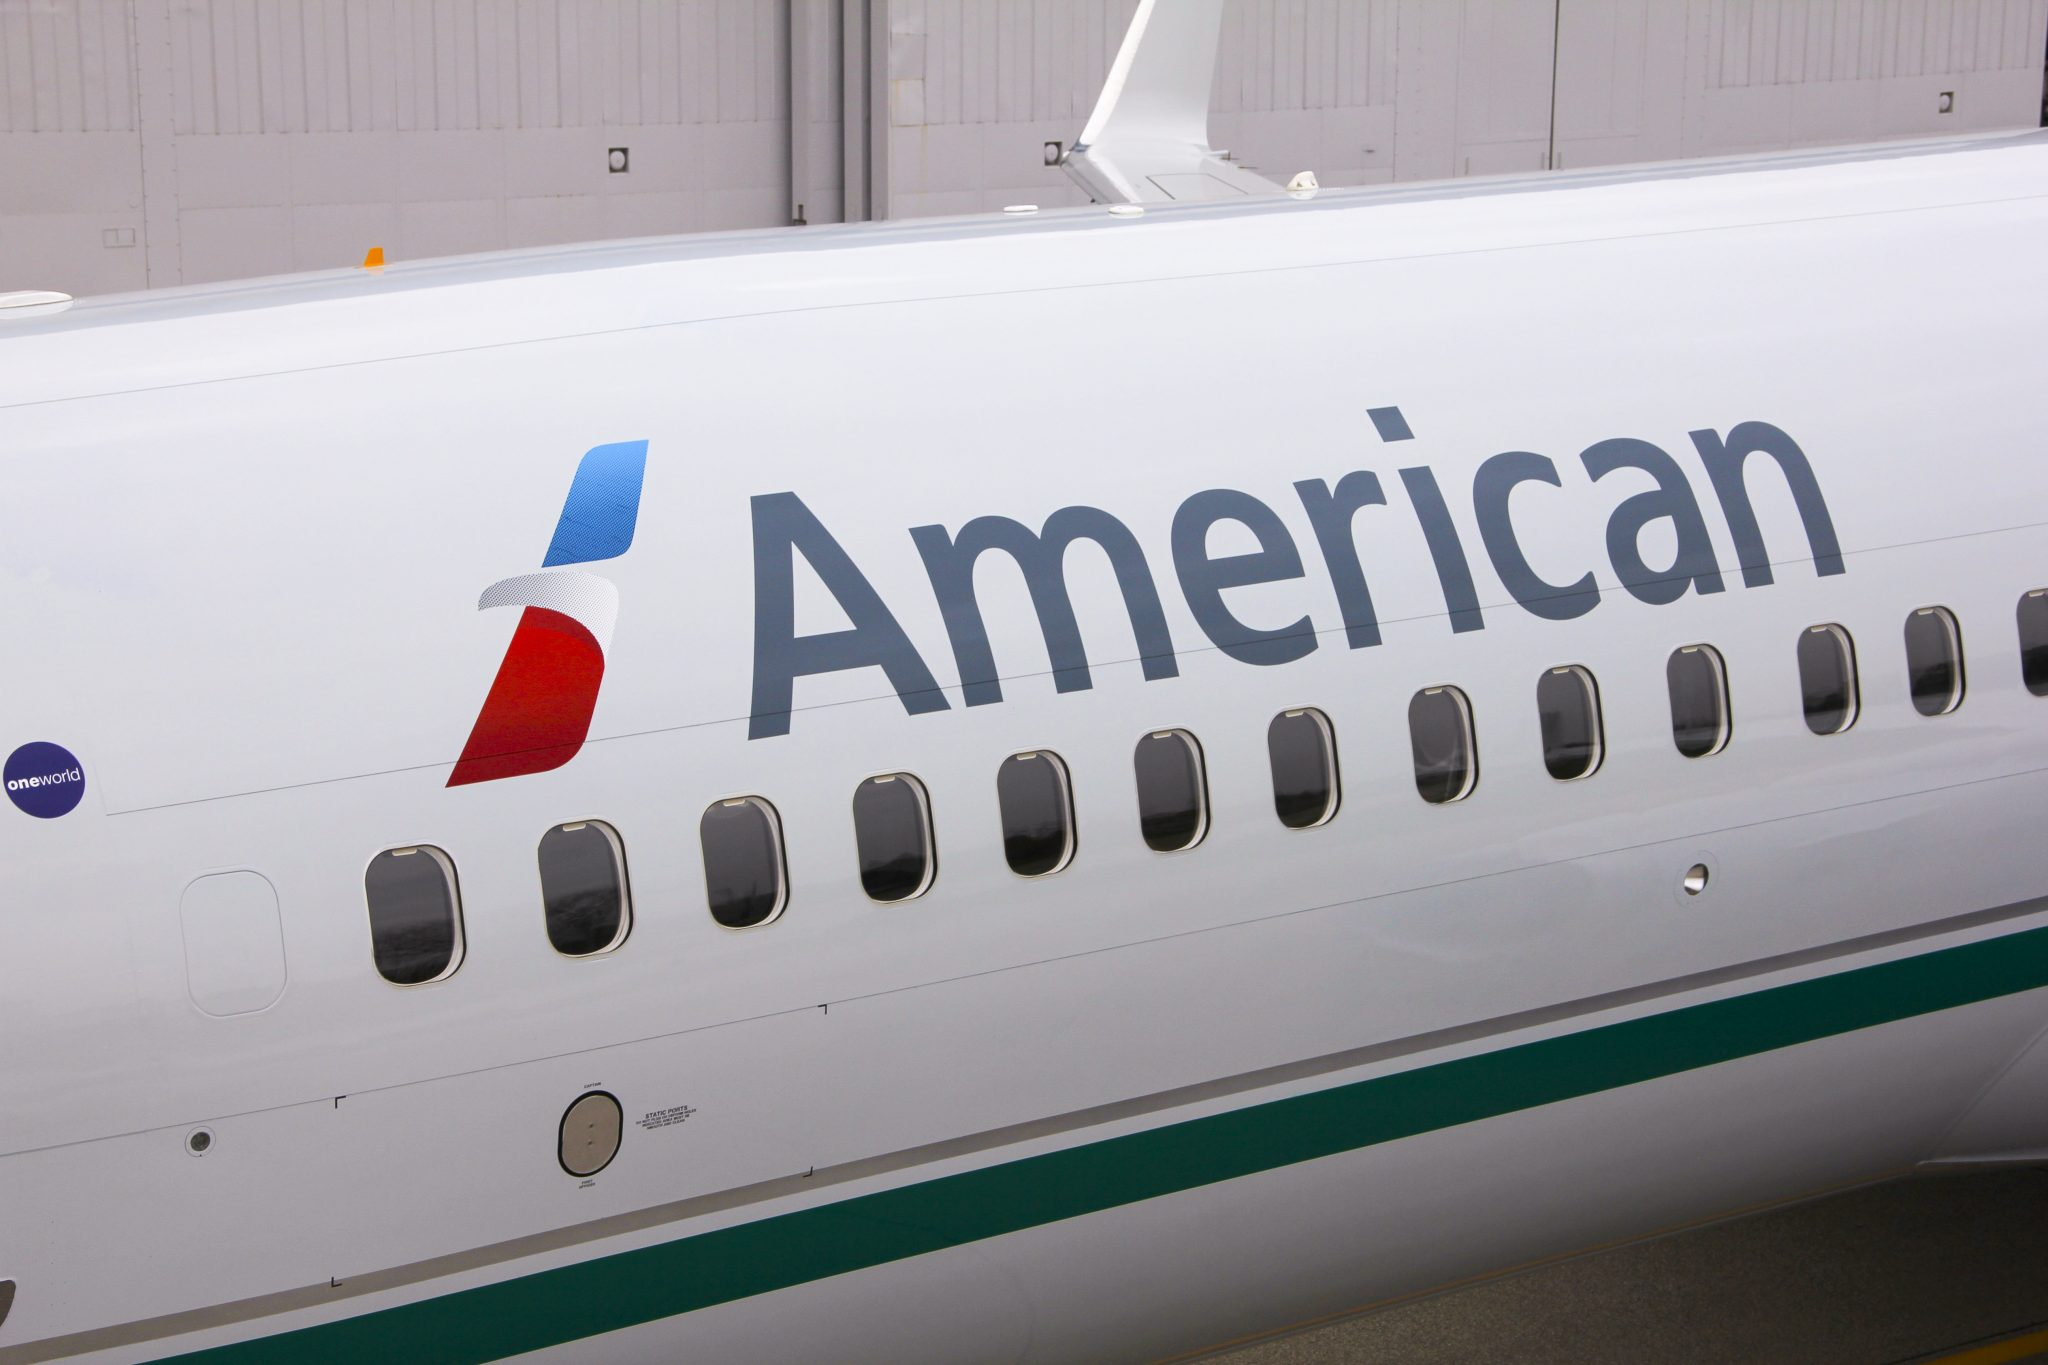 Why Are the New Heritage TWA, AirCal, And RenoAir Liveries Gray? We ...